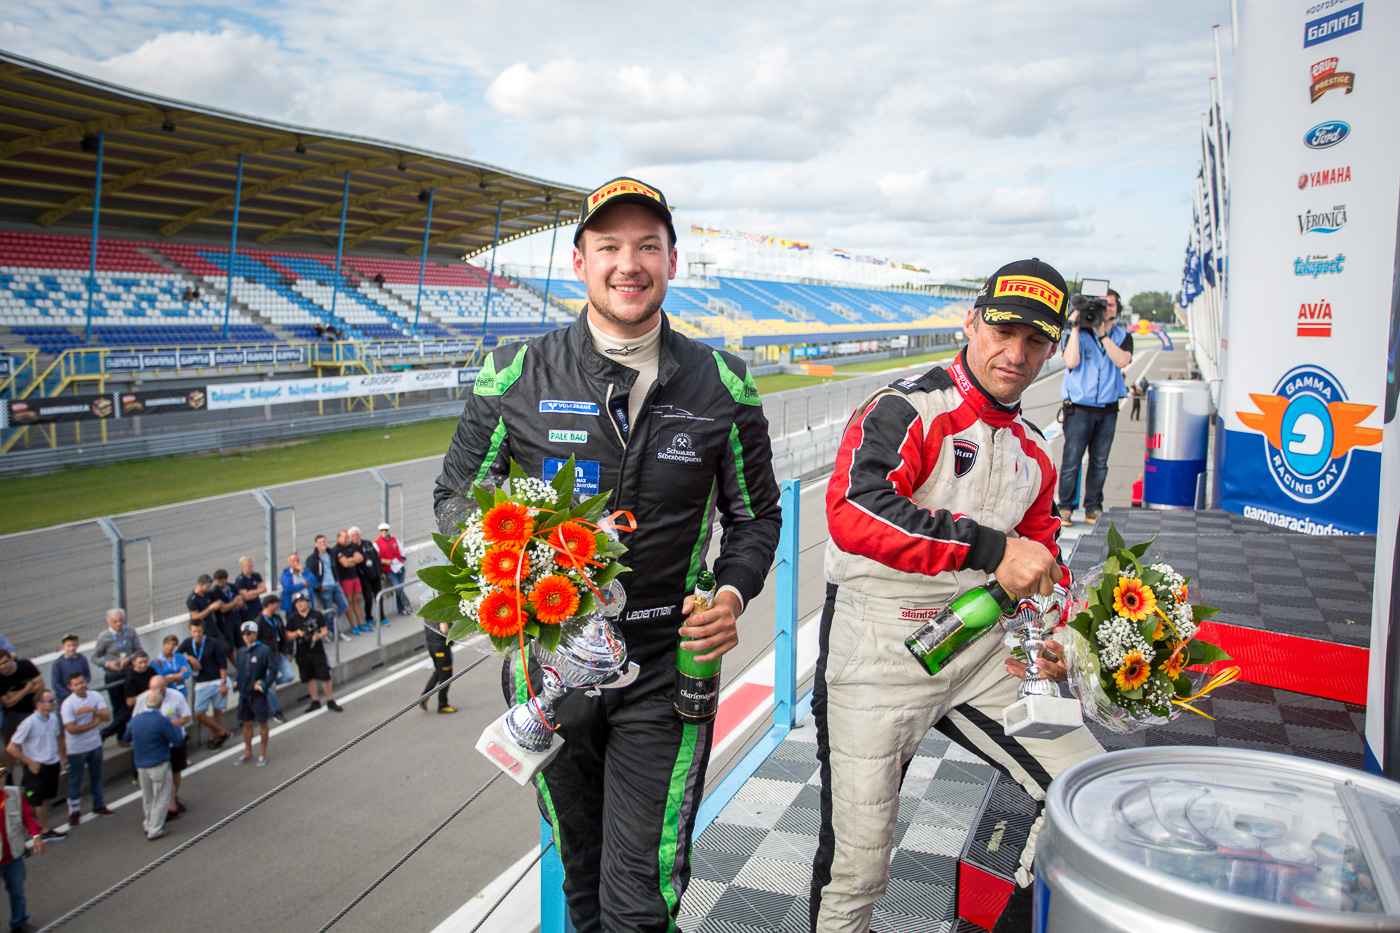 Ledermair wins race and P1 in Assen 2017 at race 1.